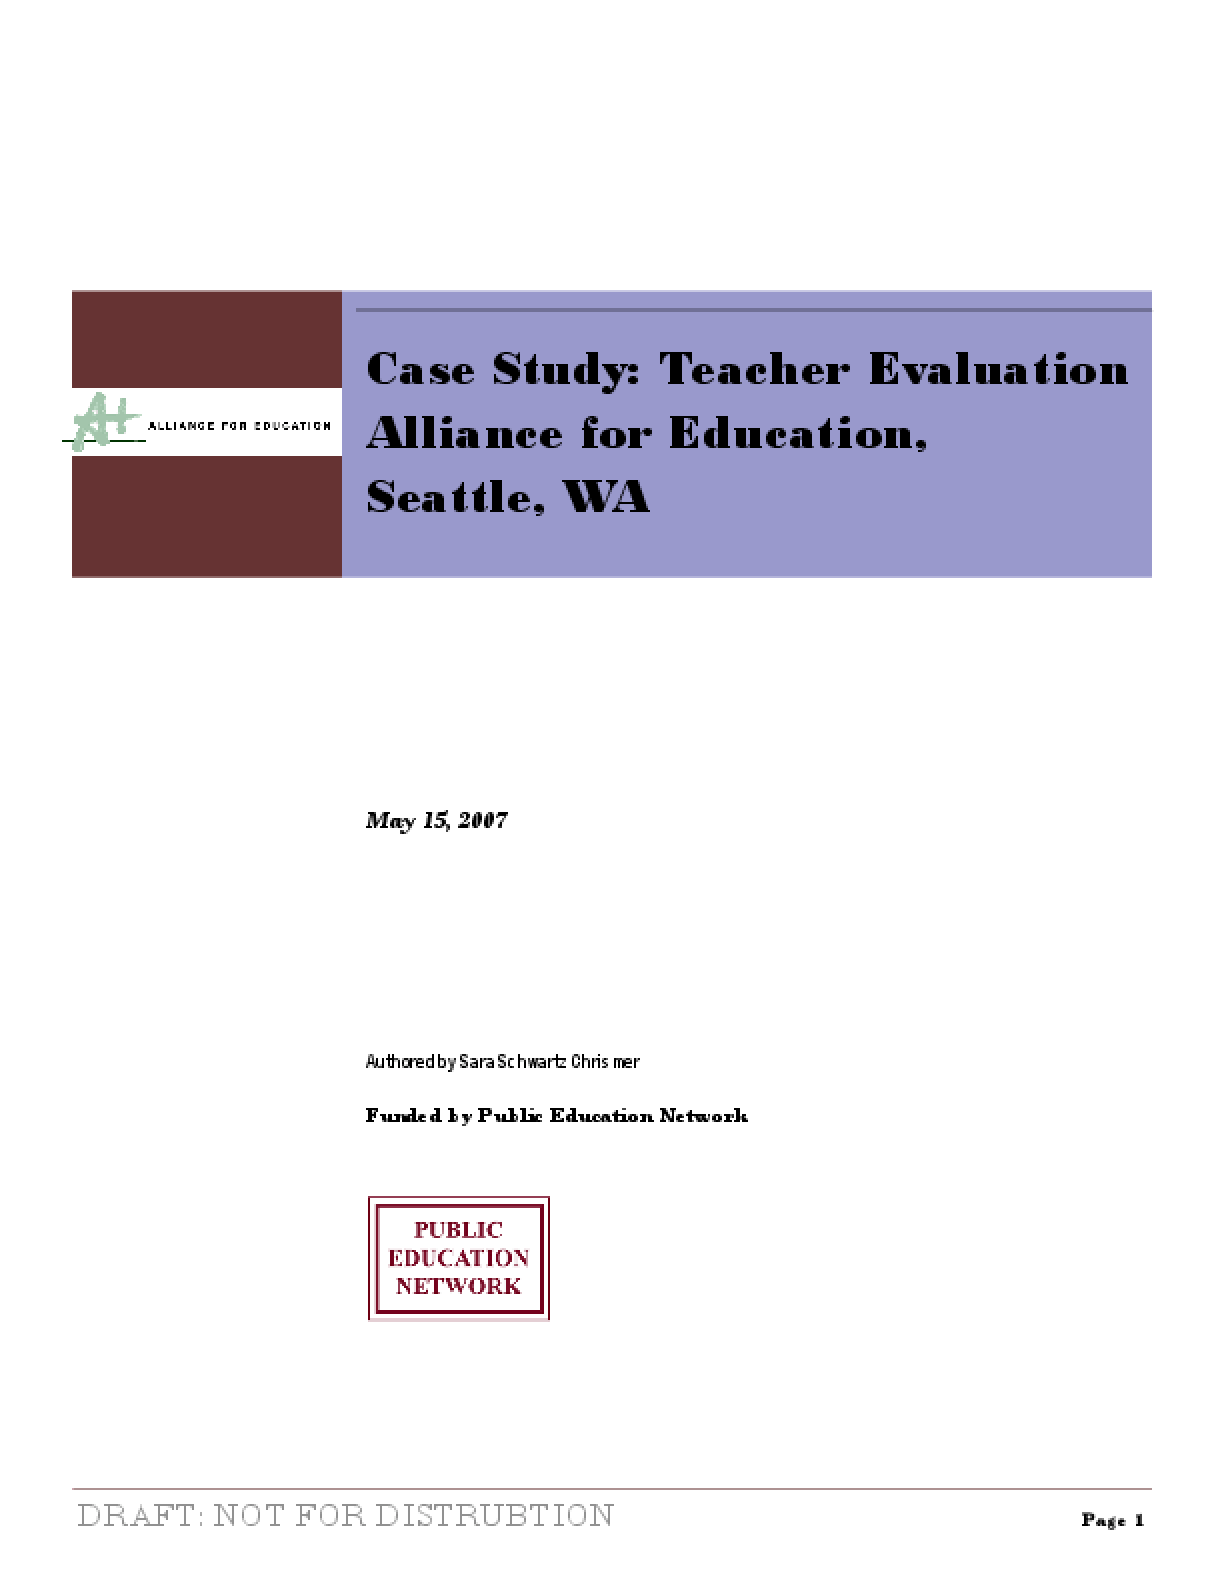 Case Study: Teacher Evaluation Alliance for Education